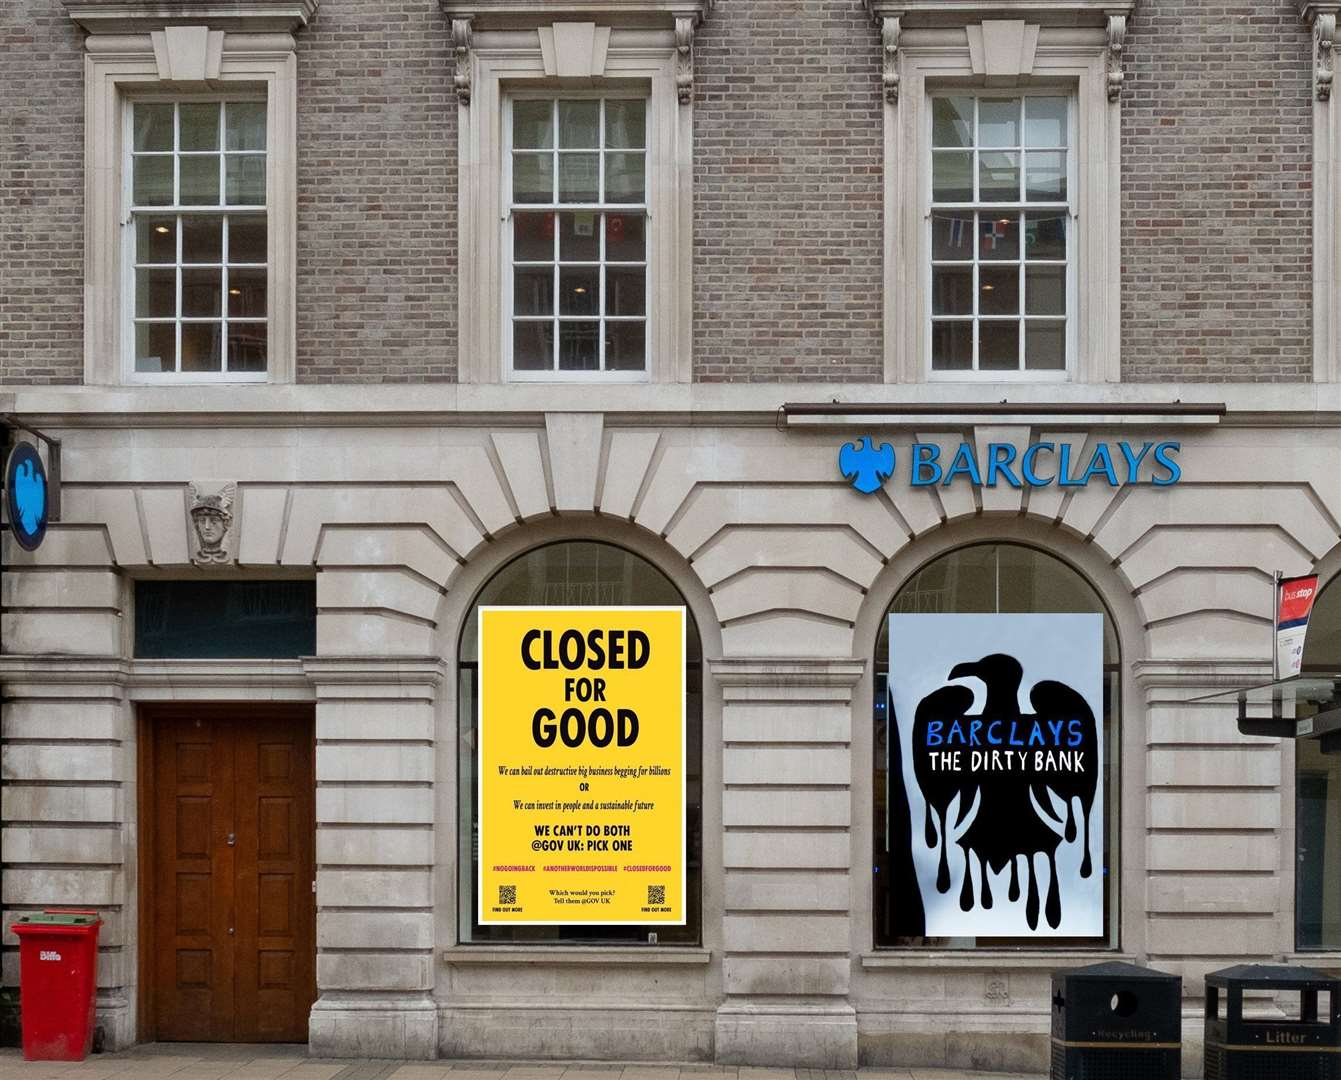 Extinction Rebellion action sees windows of Barclays bank on St Andrew's Street covered with placards